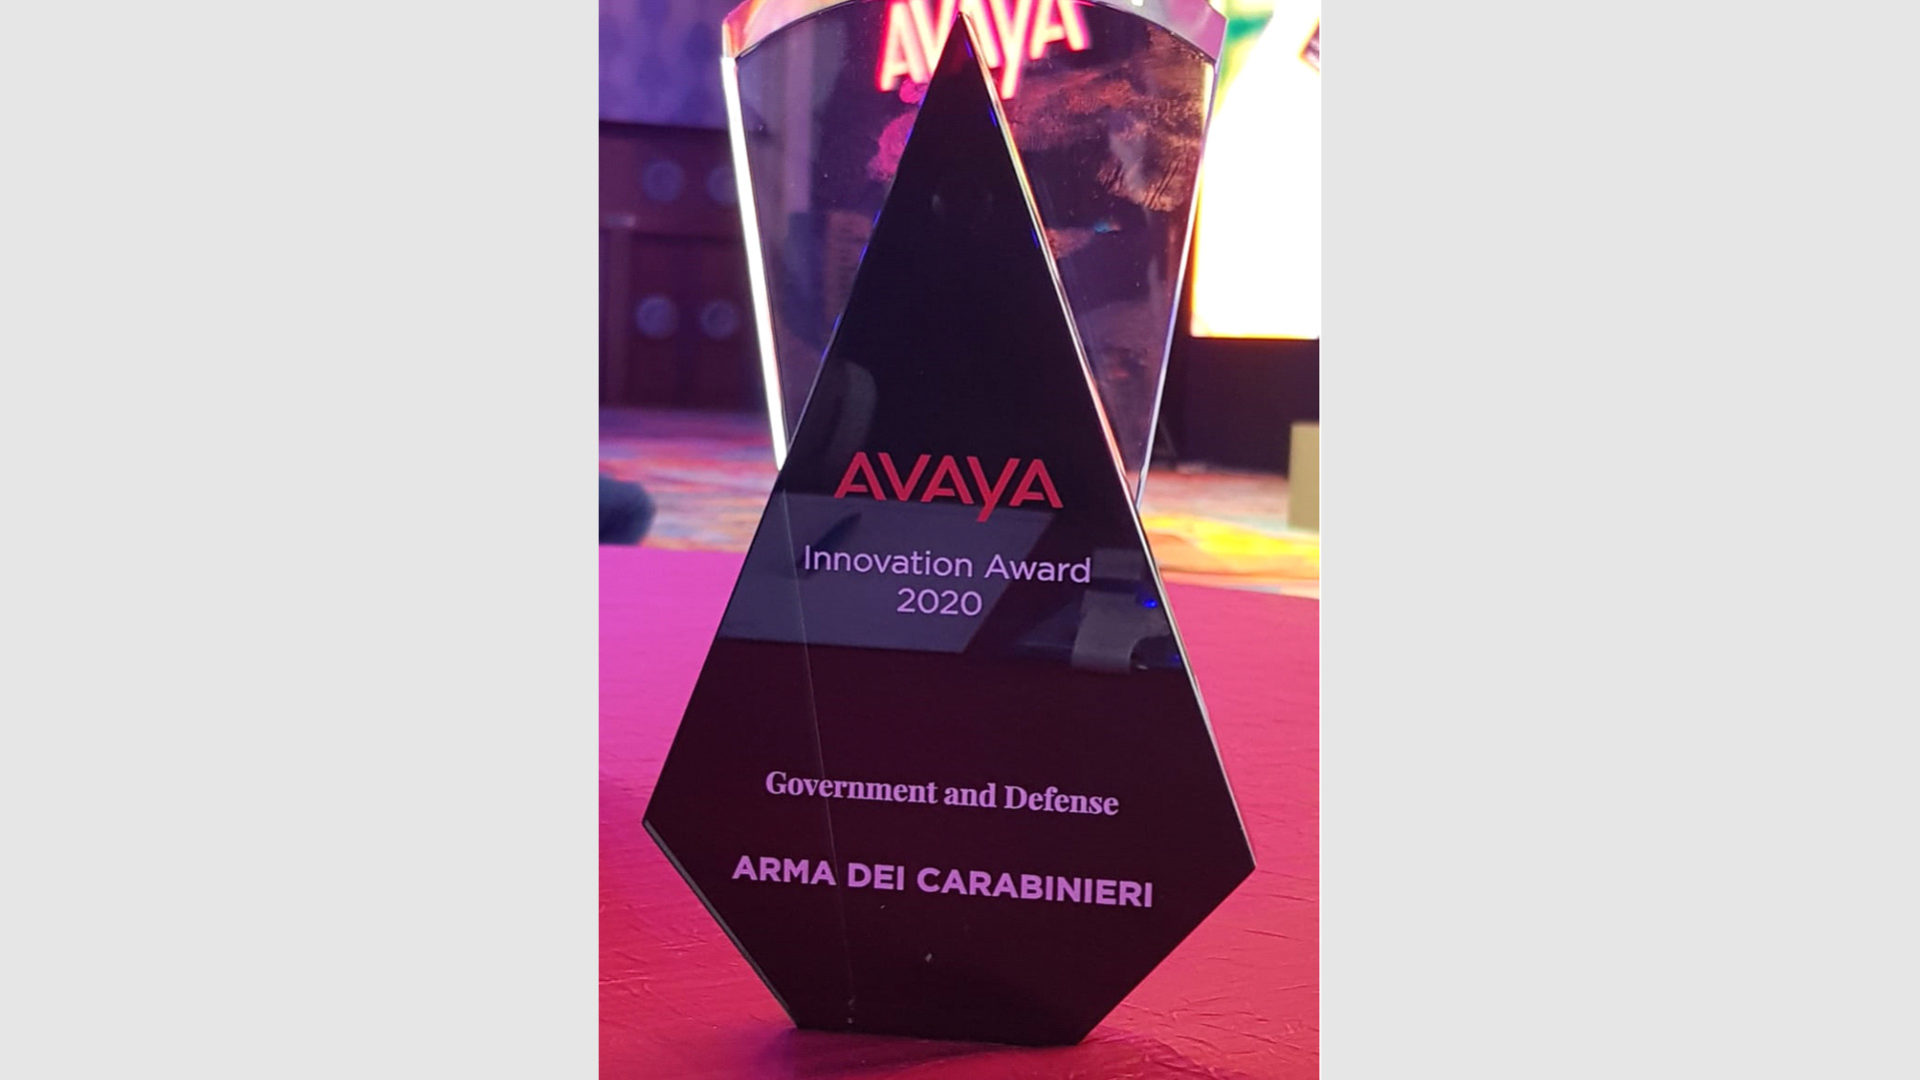 1 Avaya International Award for Innovation, Government and Defense